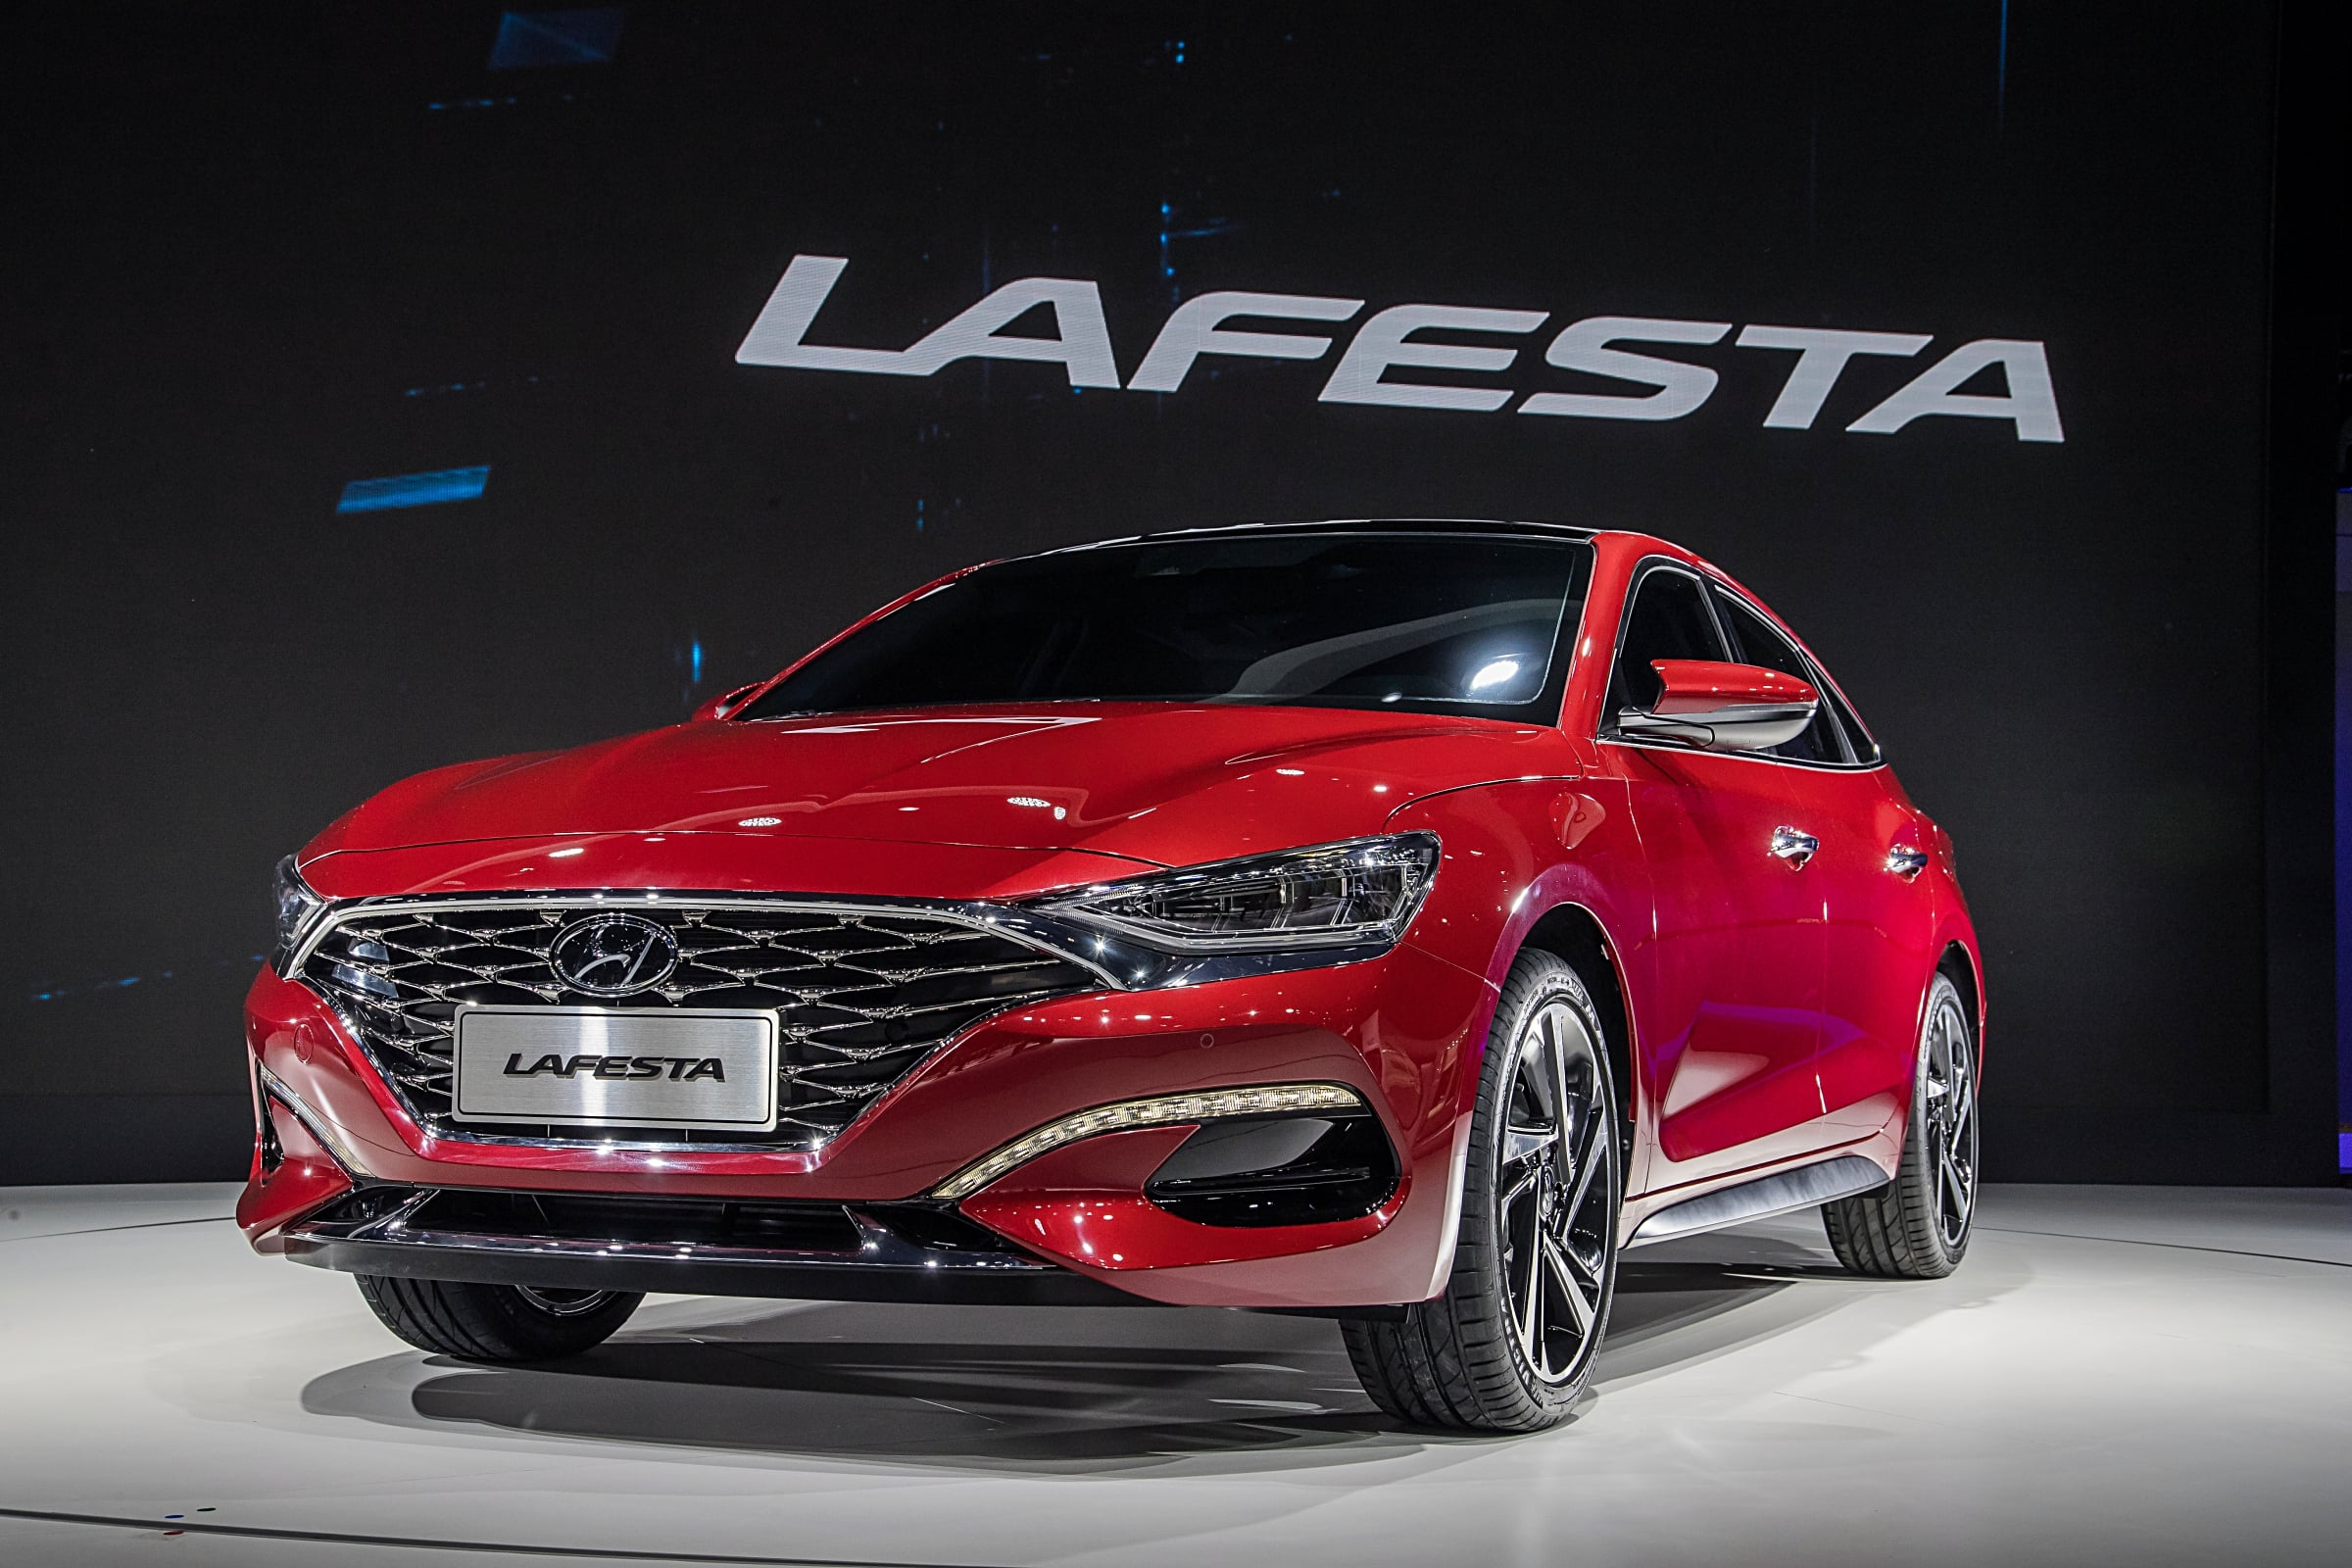 Hyundai Motor Premieres China-Focused Sporty Sedan LAFESTA at Beijing Auto Show